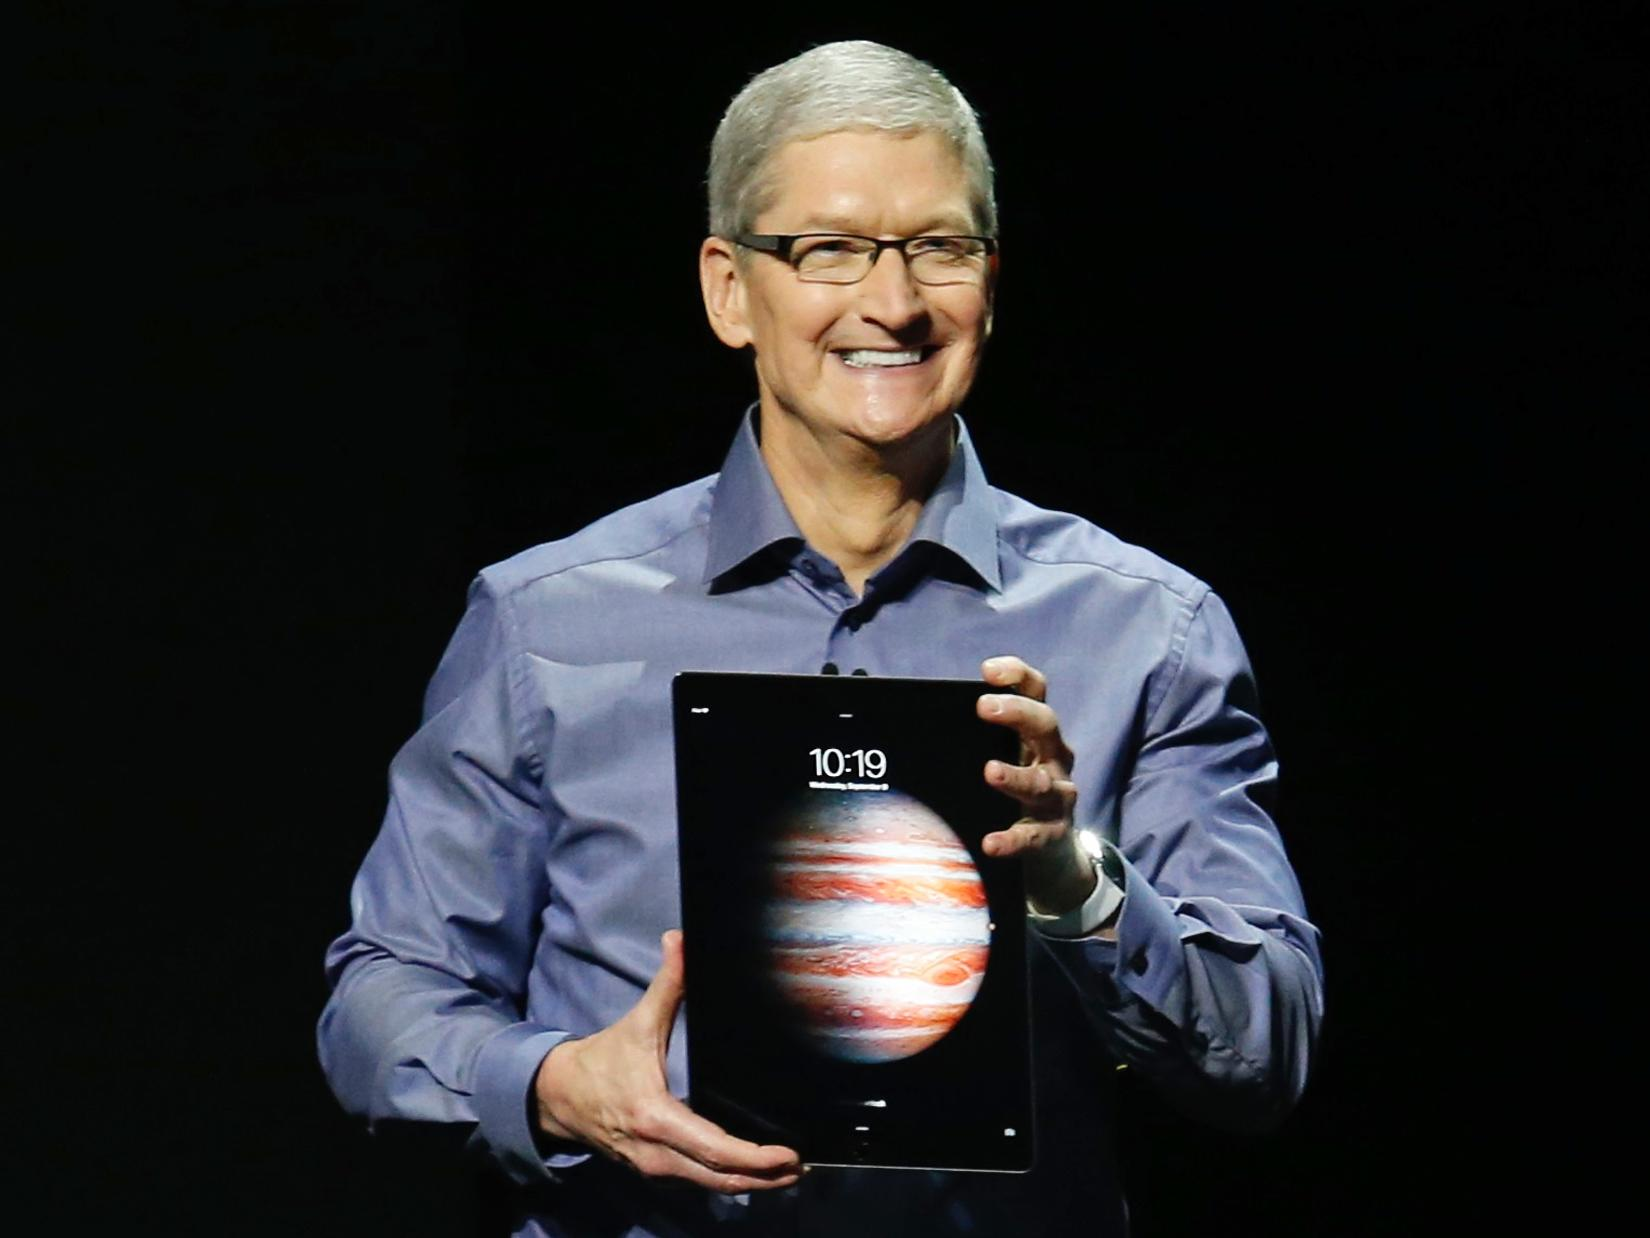 Here's why Apple's partnership with SAP is amazingly strategic and smart